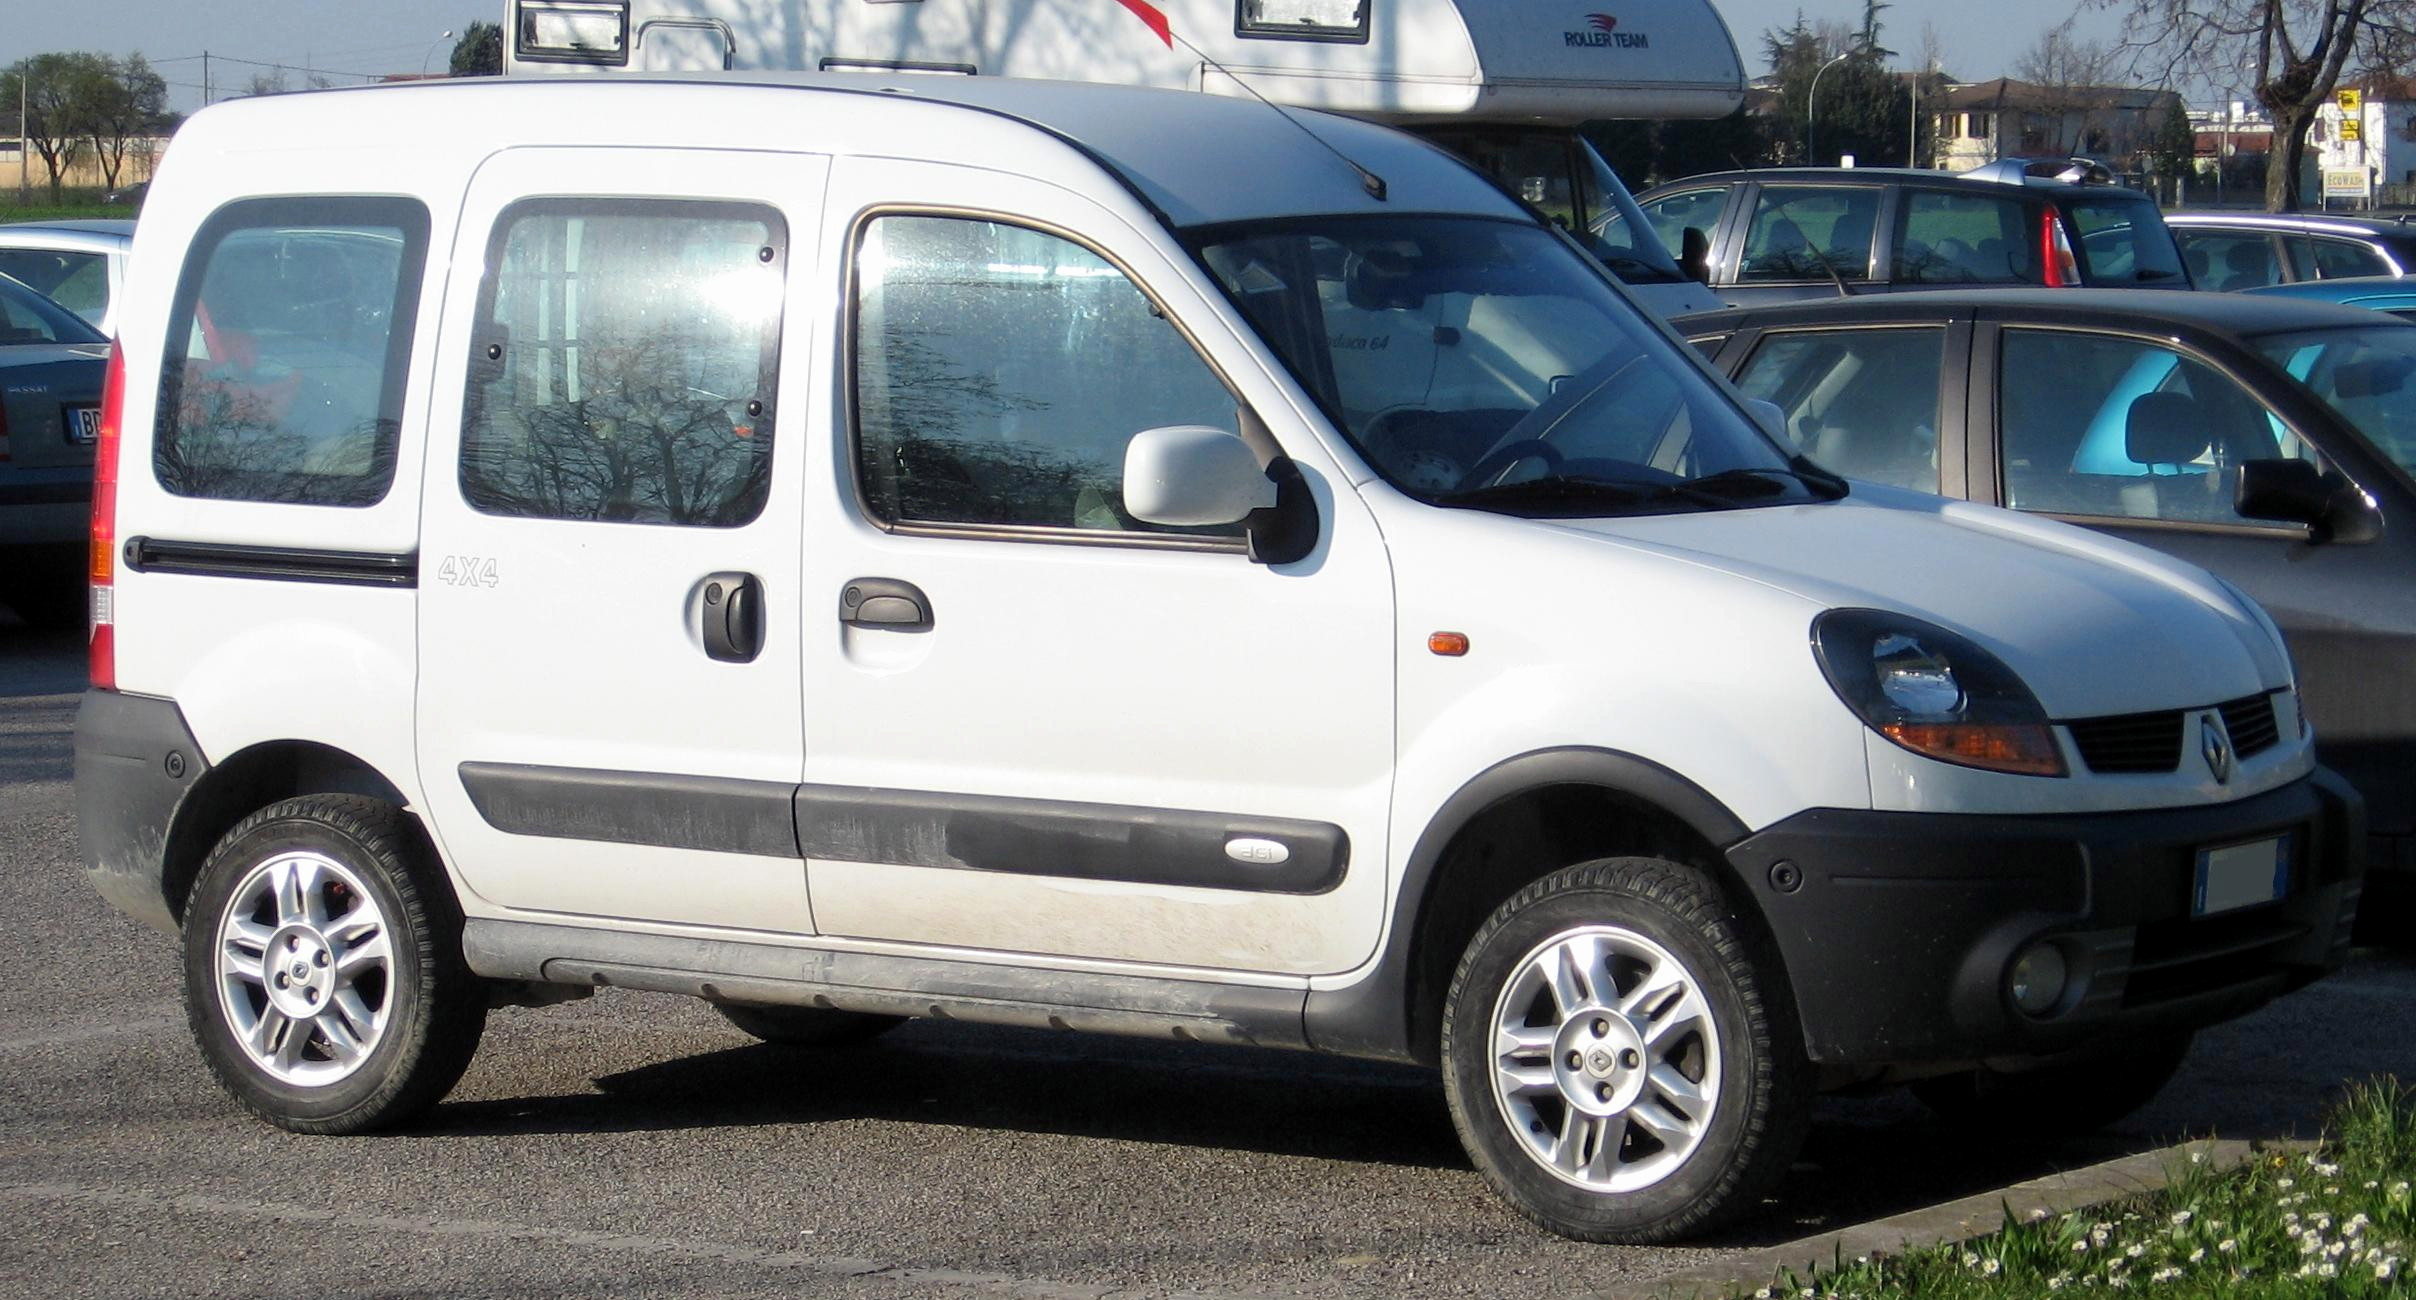 file renault kangoo 4x4 jpg wikimedia commons. Black Bedroom Furniture Sets. Home Design Ideas